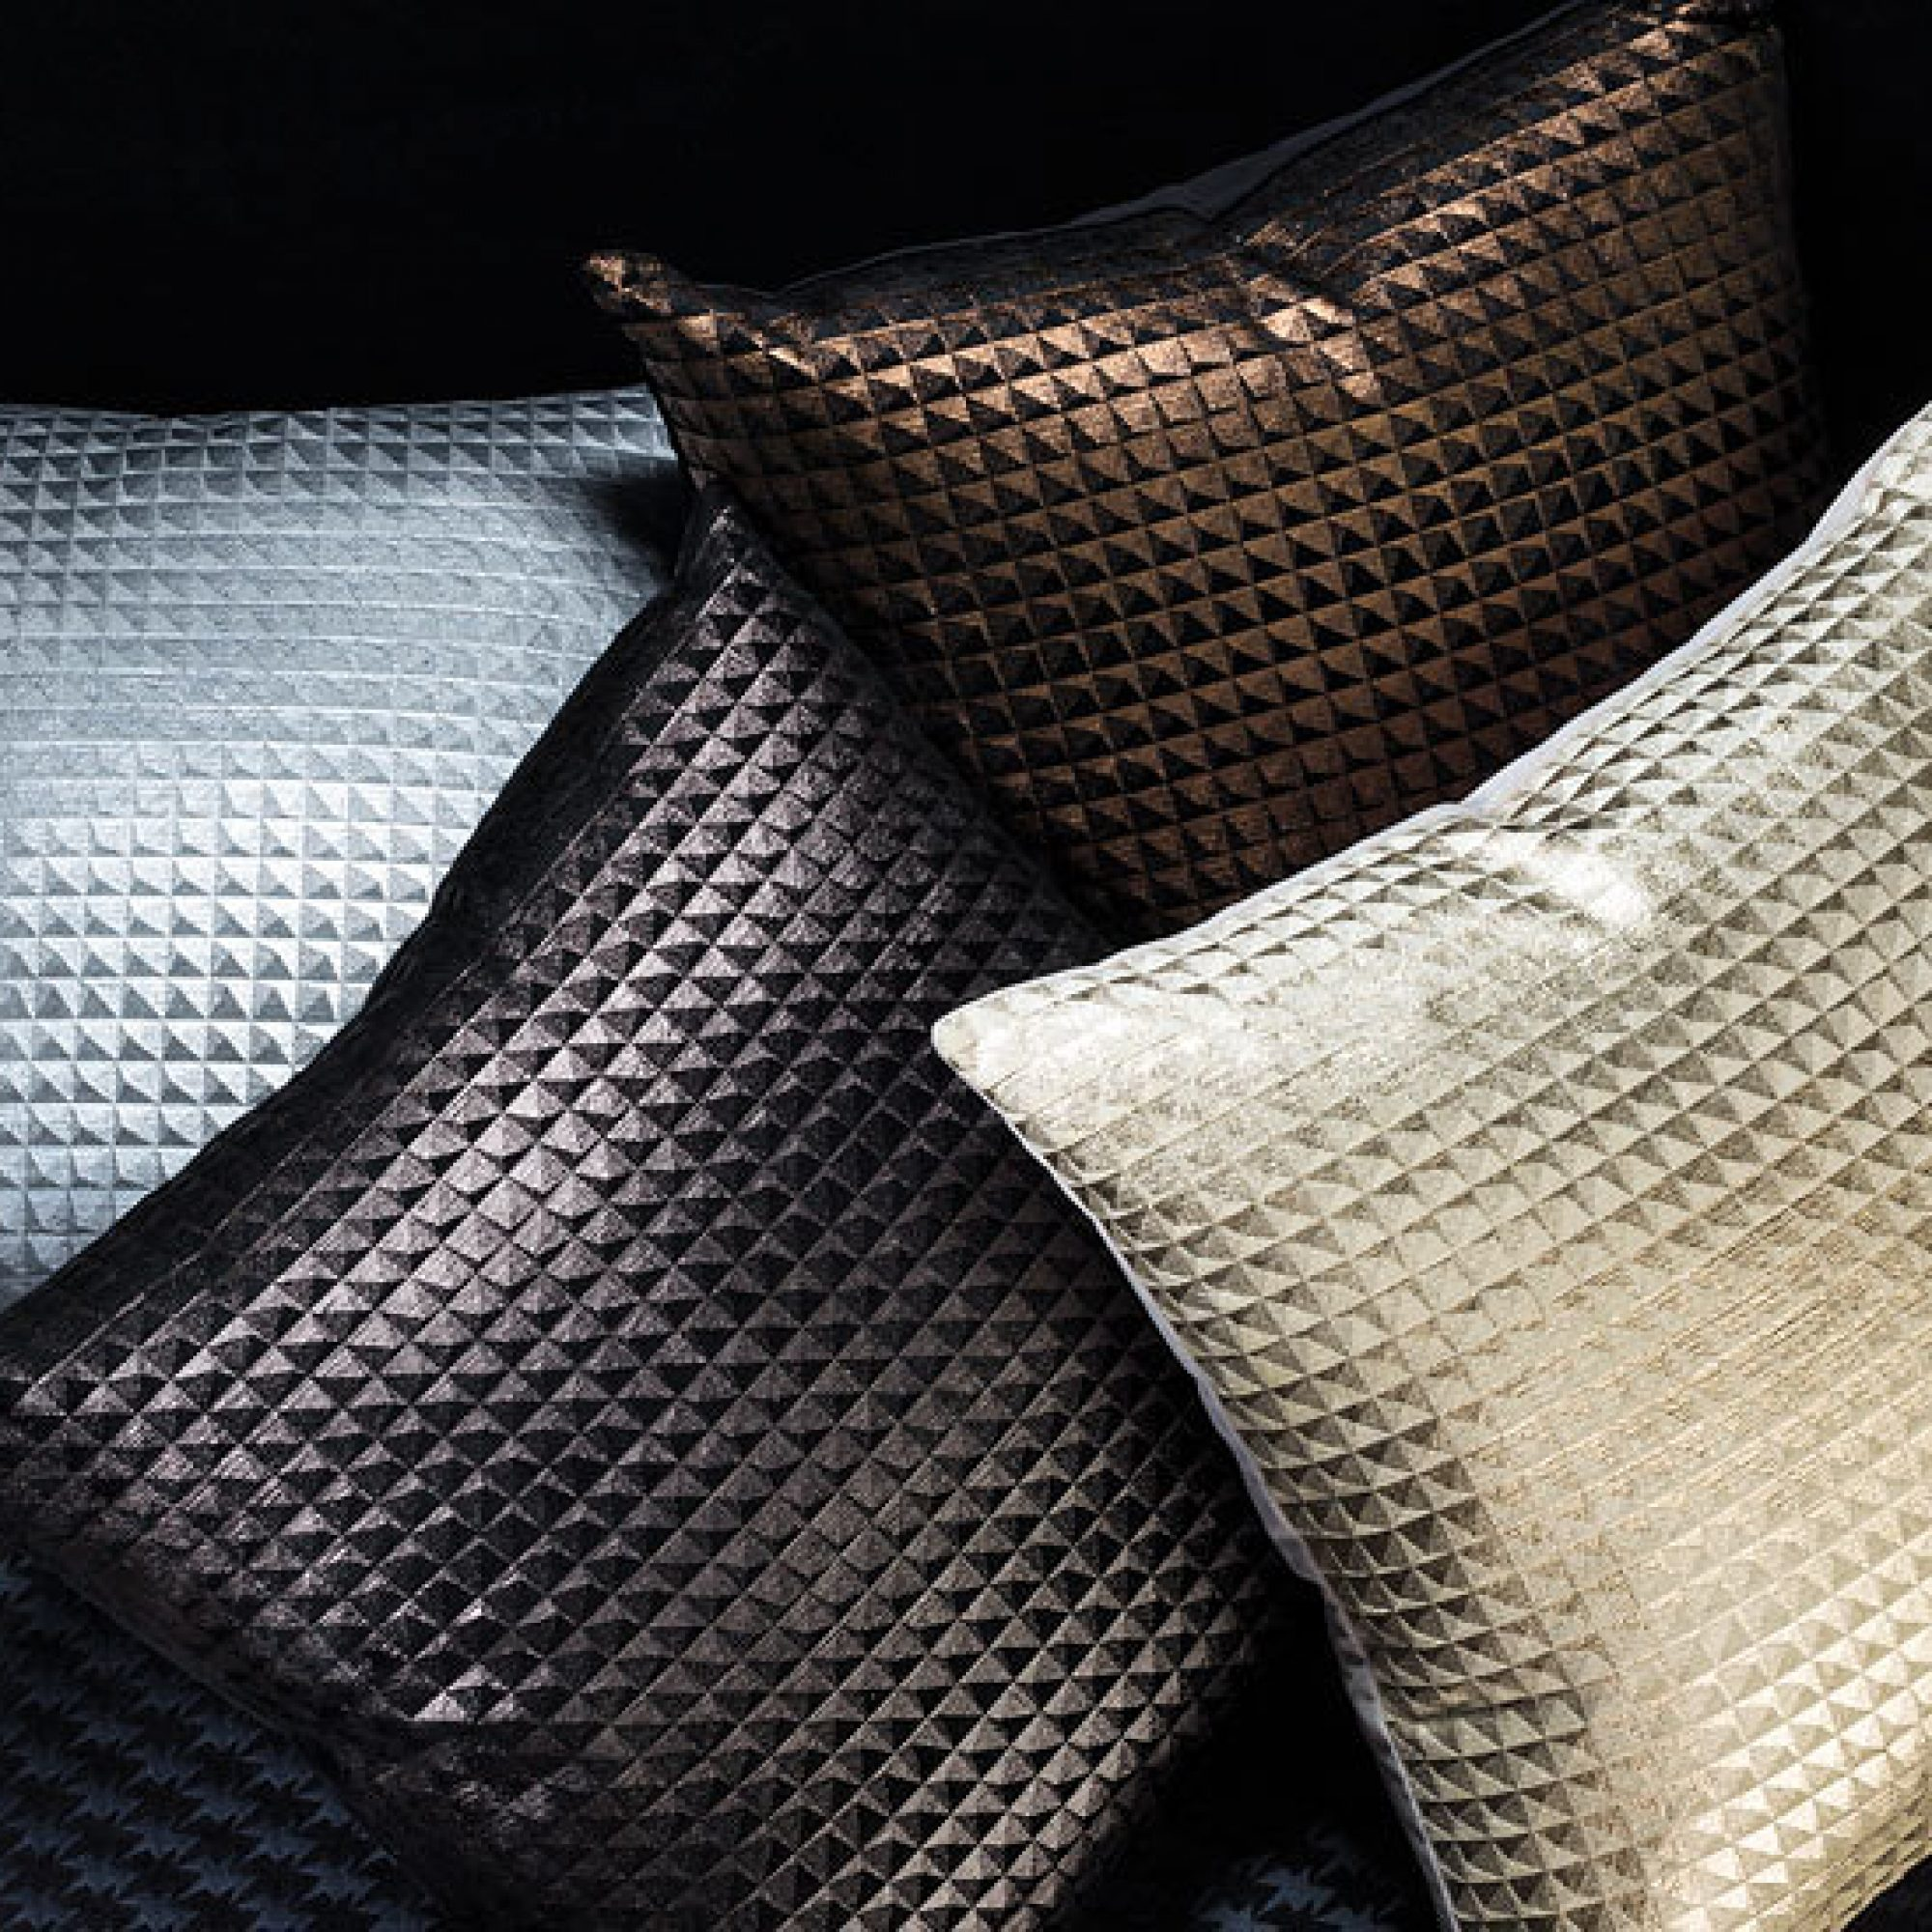 The romo group cushions